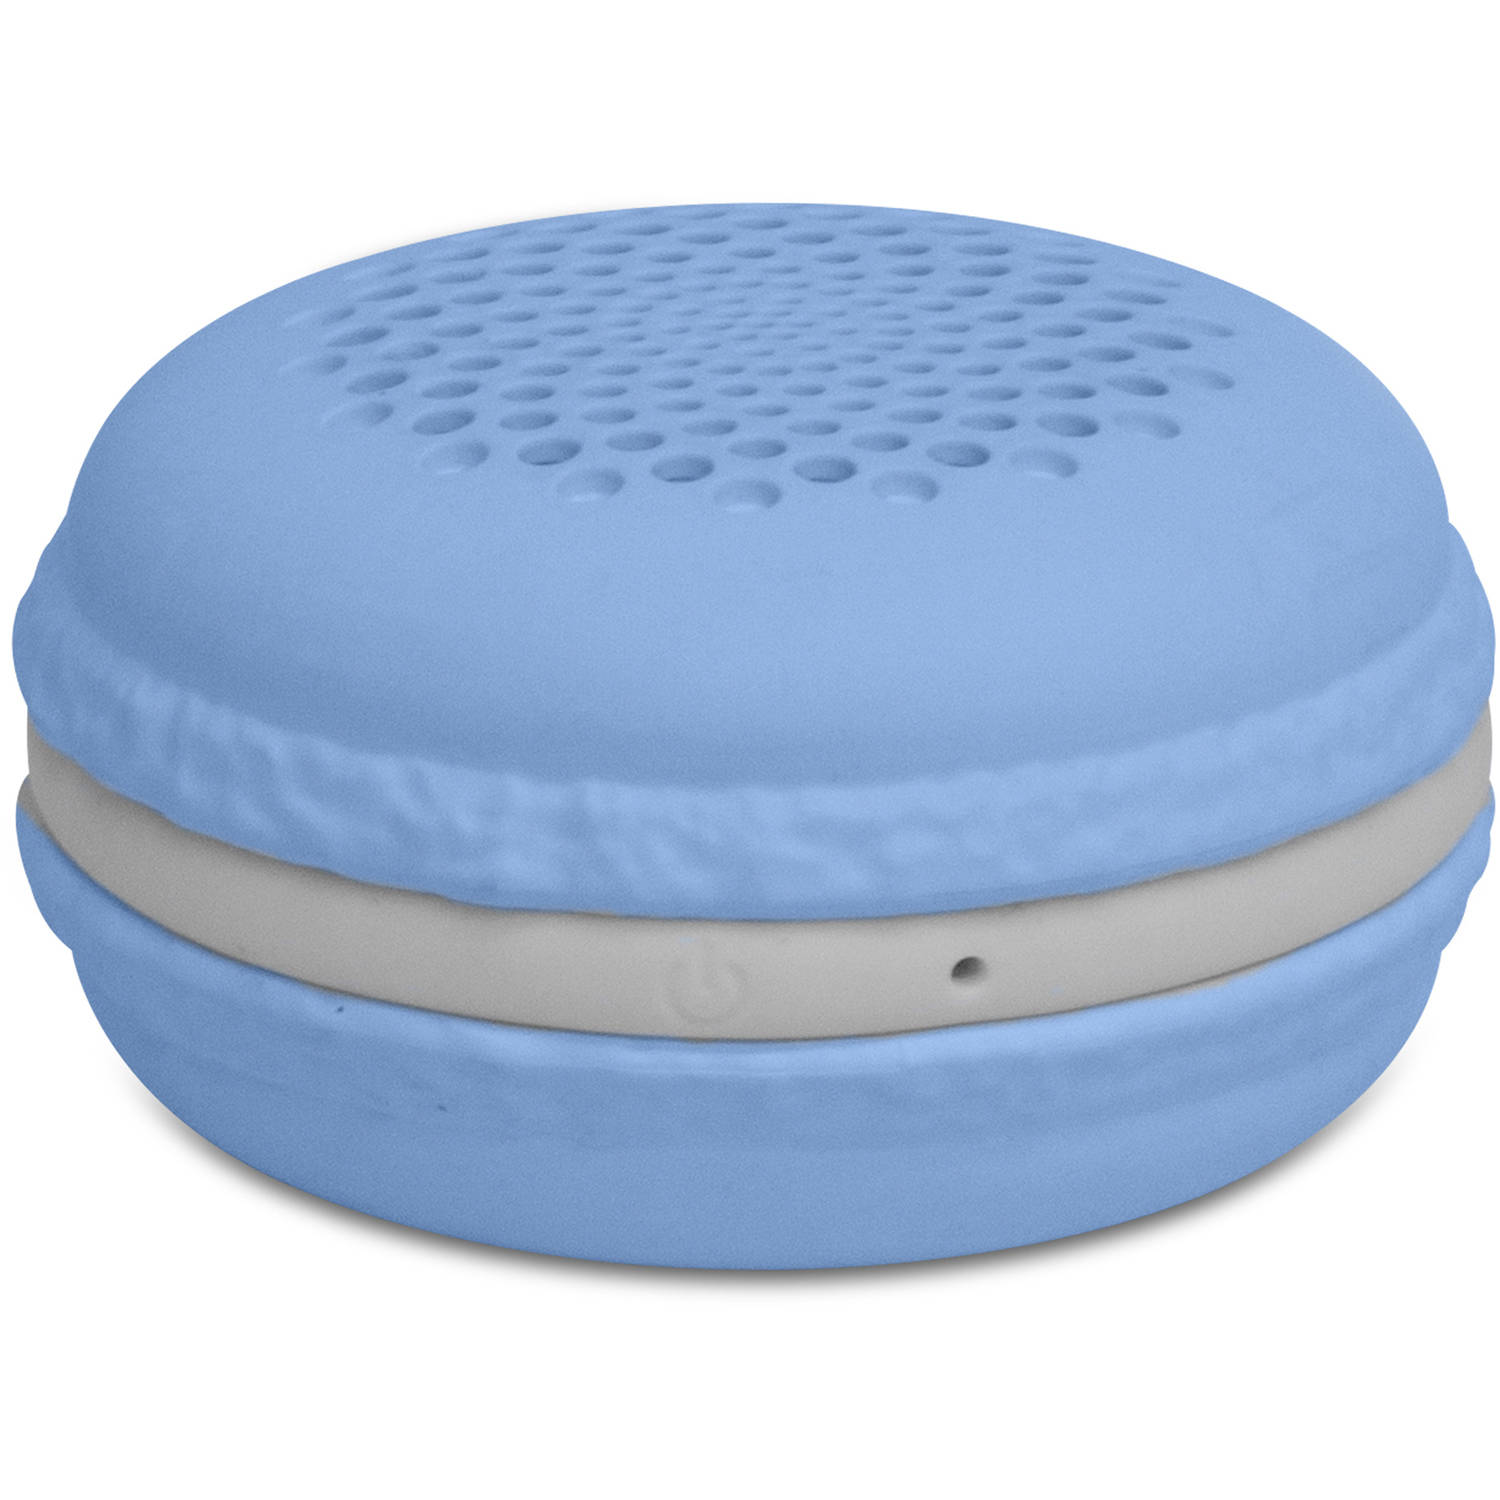 Sceptre McCaron Bluetooth Speaker, Blue